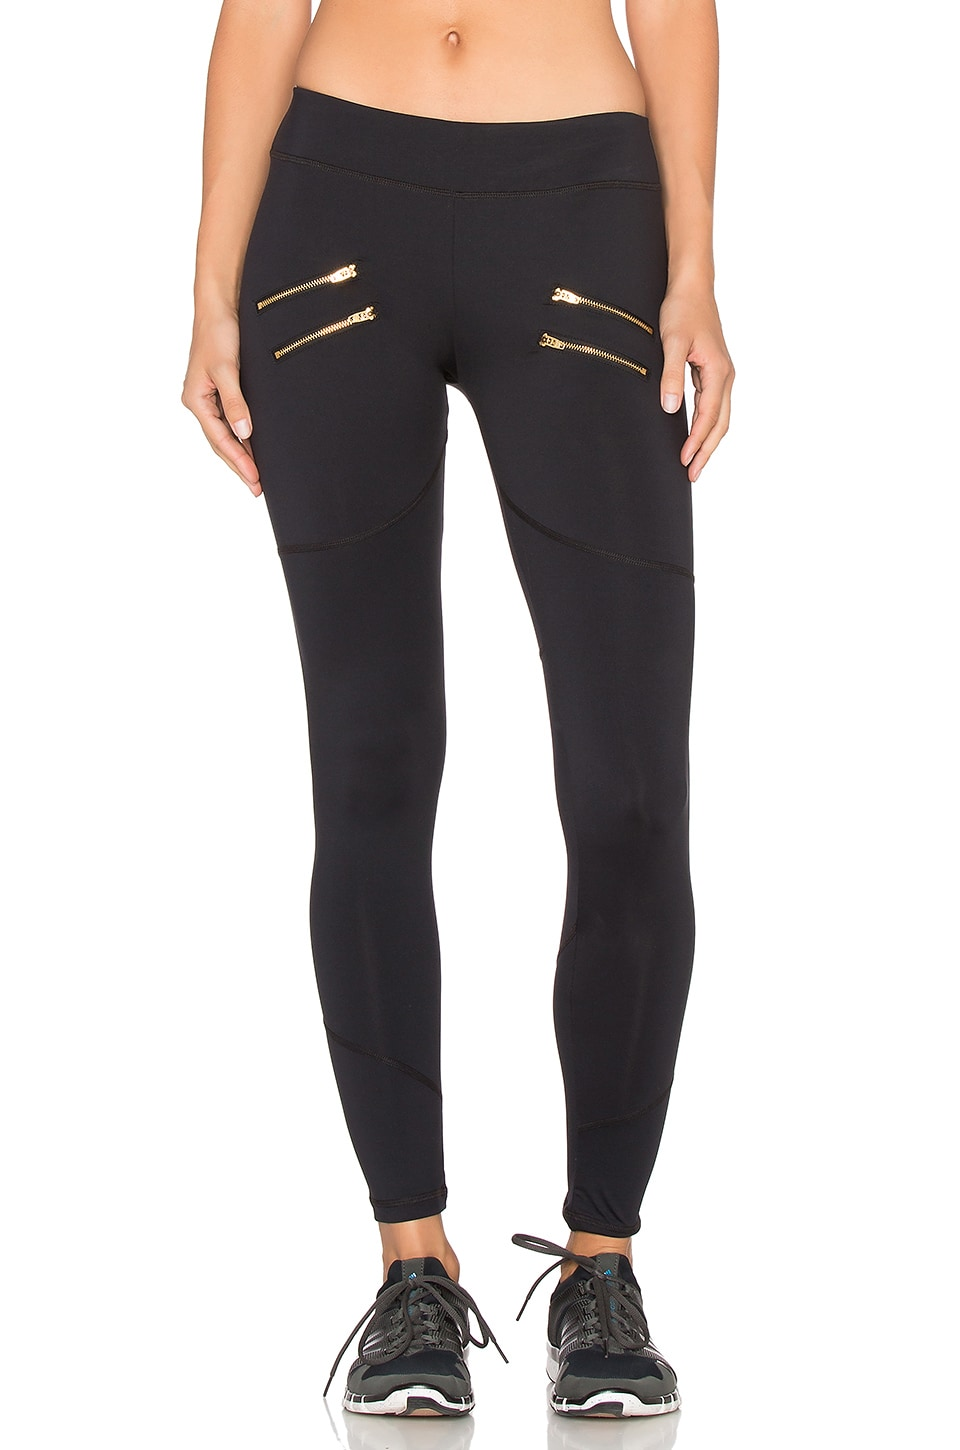 Varley Sofia Compression Tight in Black